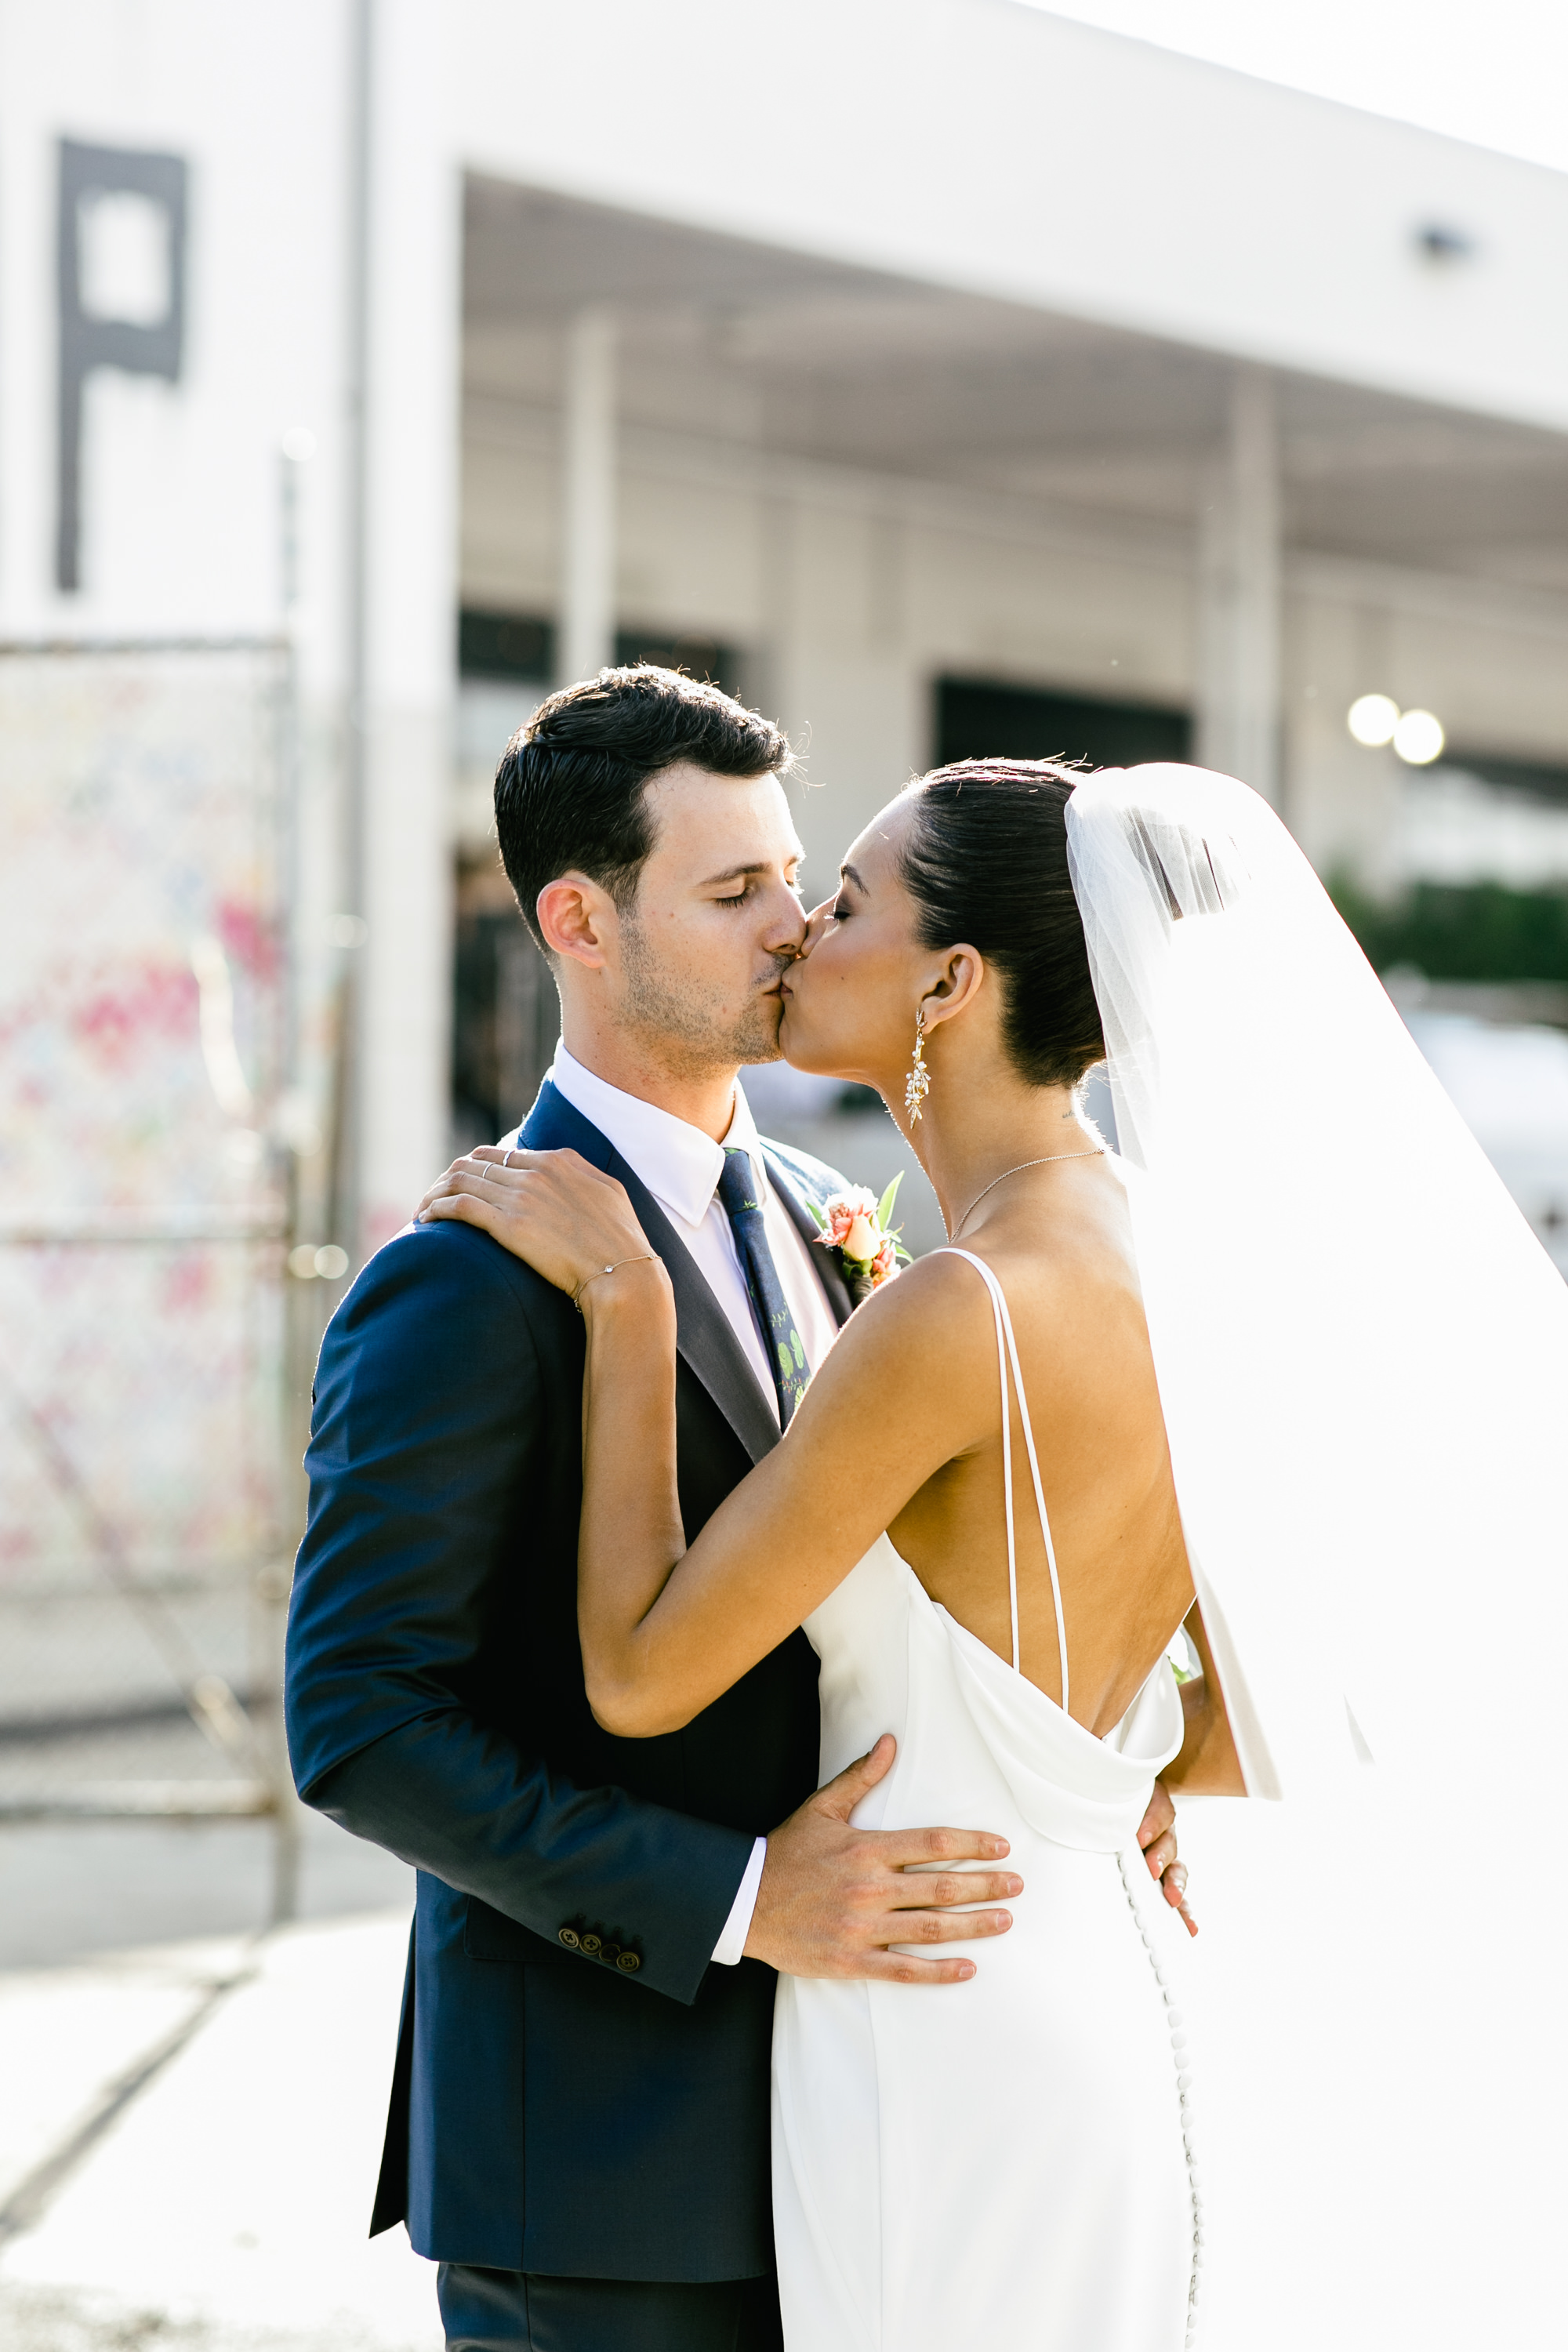 photography-wedding-weddings-natural-candid-dock 5 dc-washington dc-philadelphia-mixed race-editorial-modern-fine-art-043.JPG